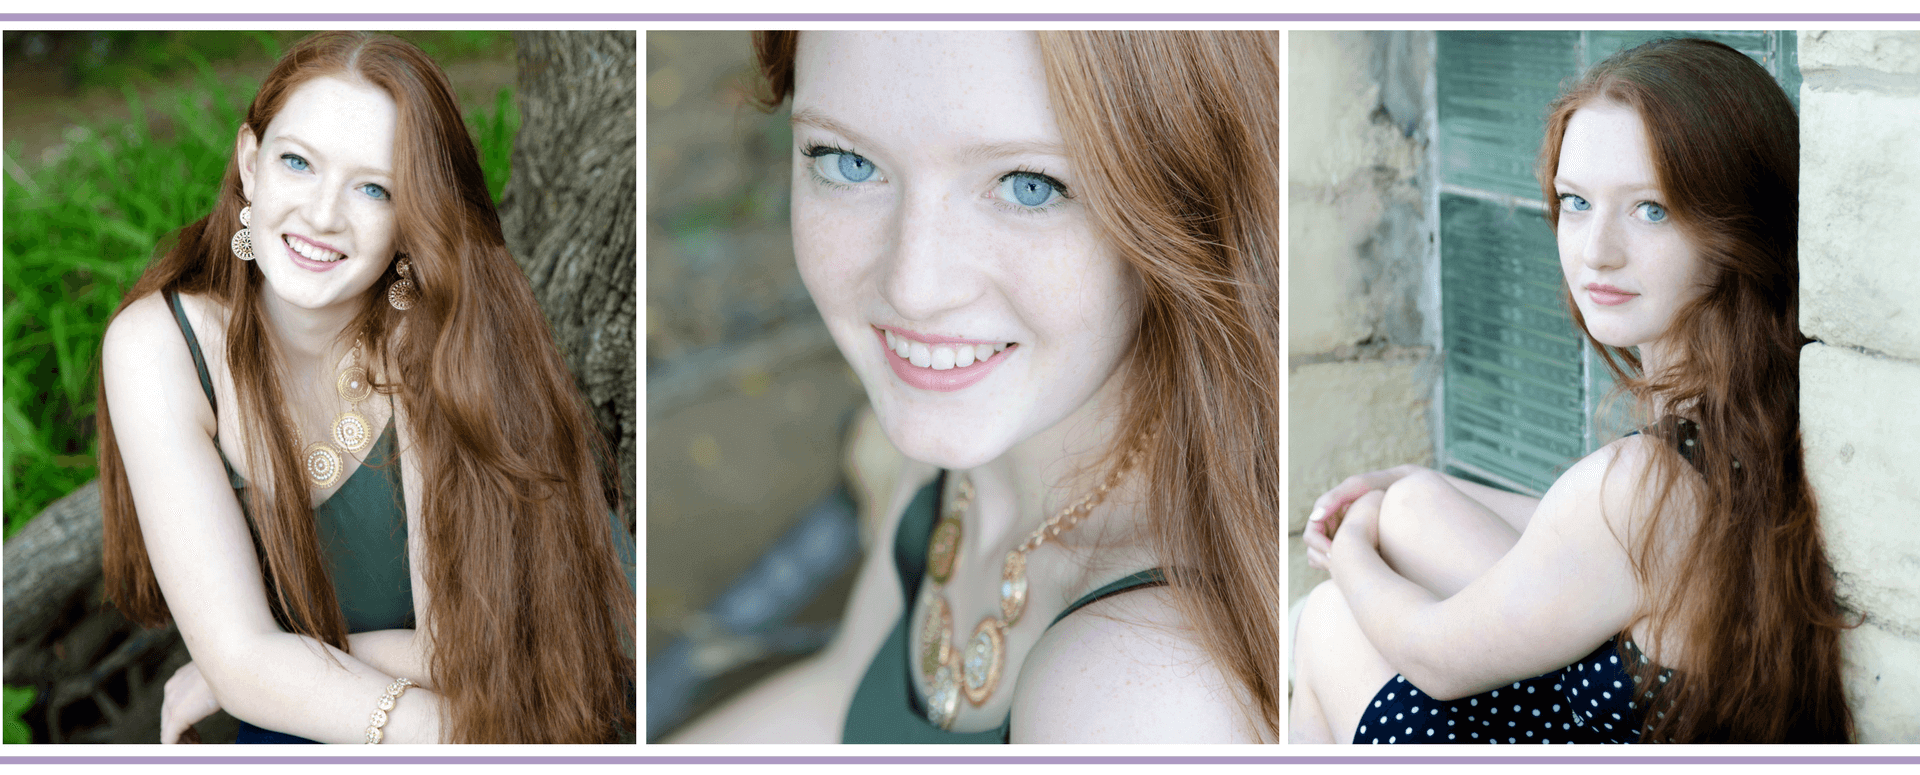 Woodbury MN Photographer   Professional Sr. Portraits   Focus Photography by Susan